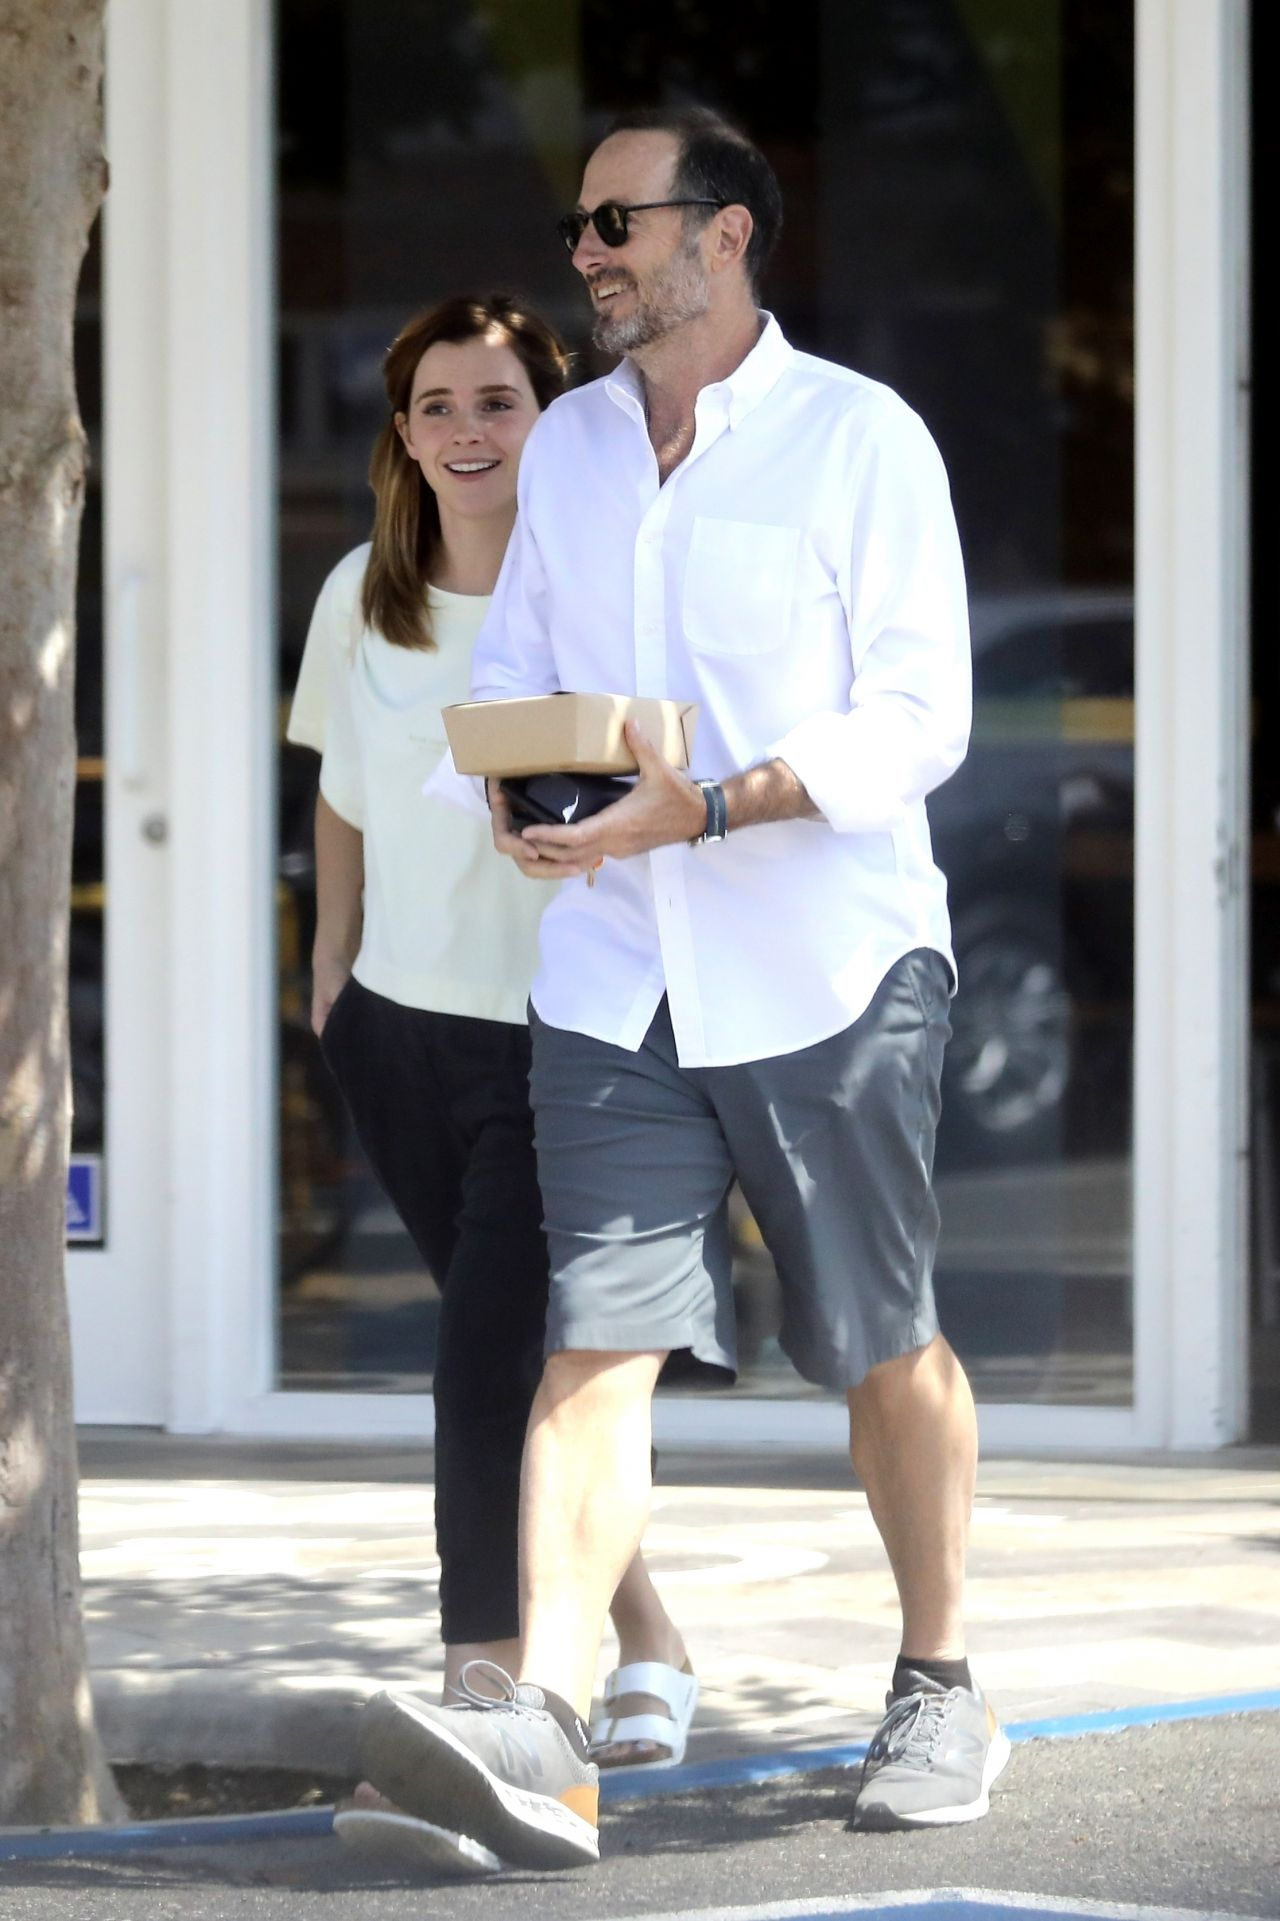 Emma Watson Out For Lunch In Santa Monica 08 13 2019